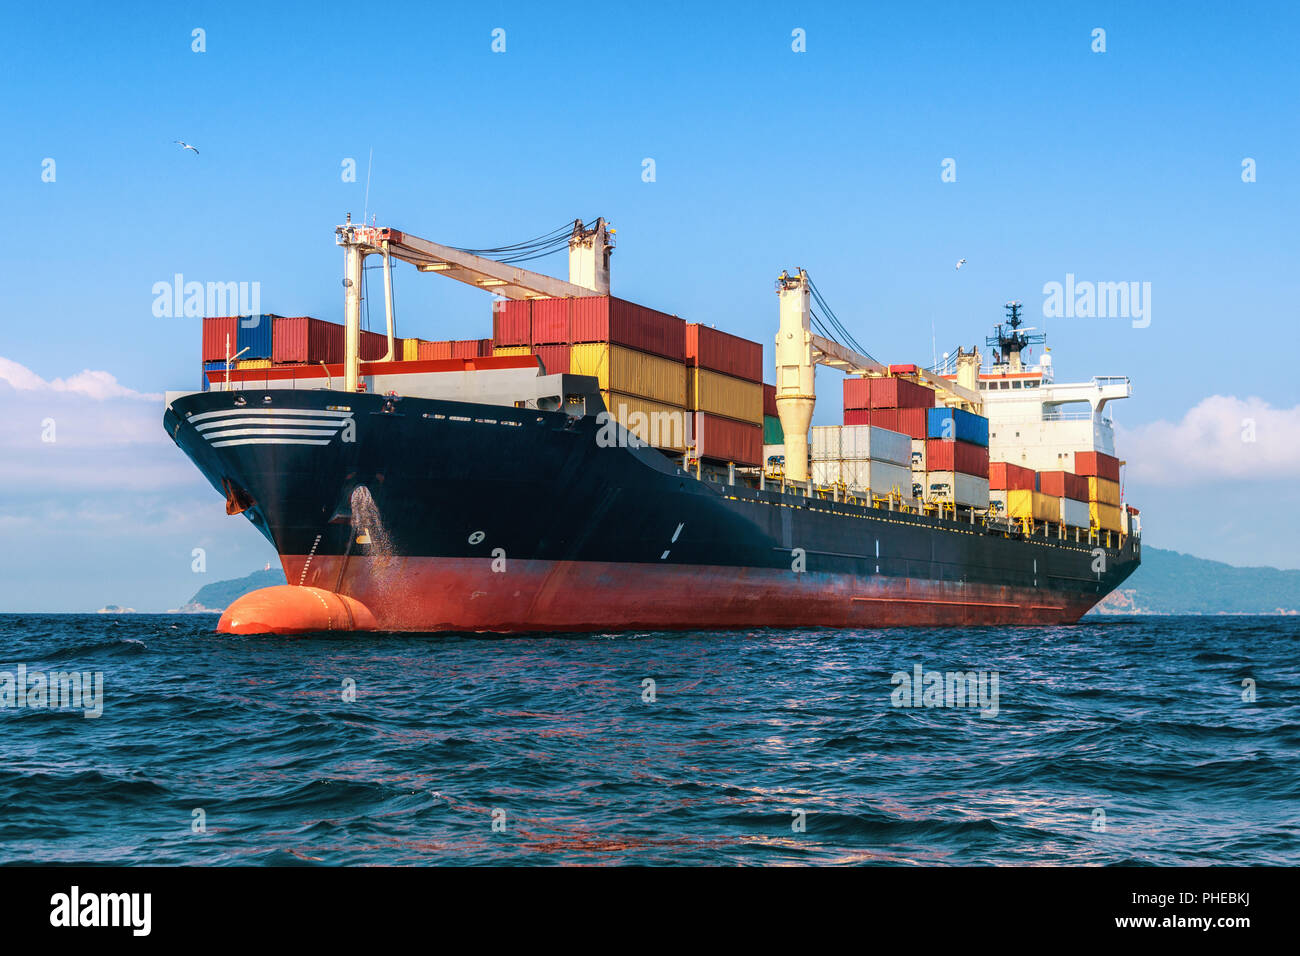 Logistics and transportation of International Container Cargo ship - Stock Image